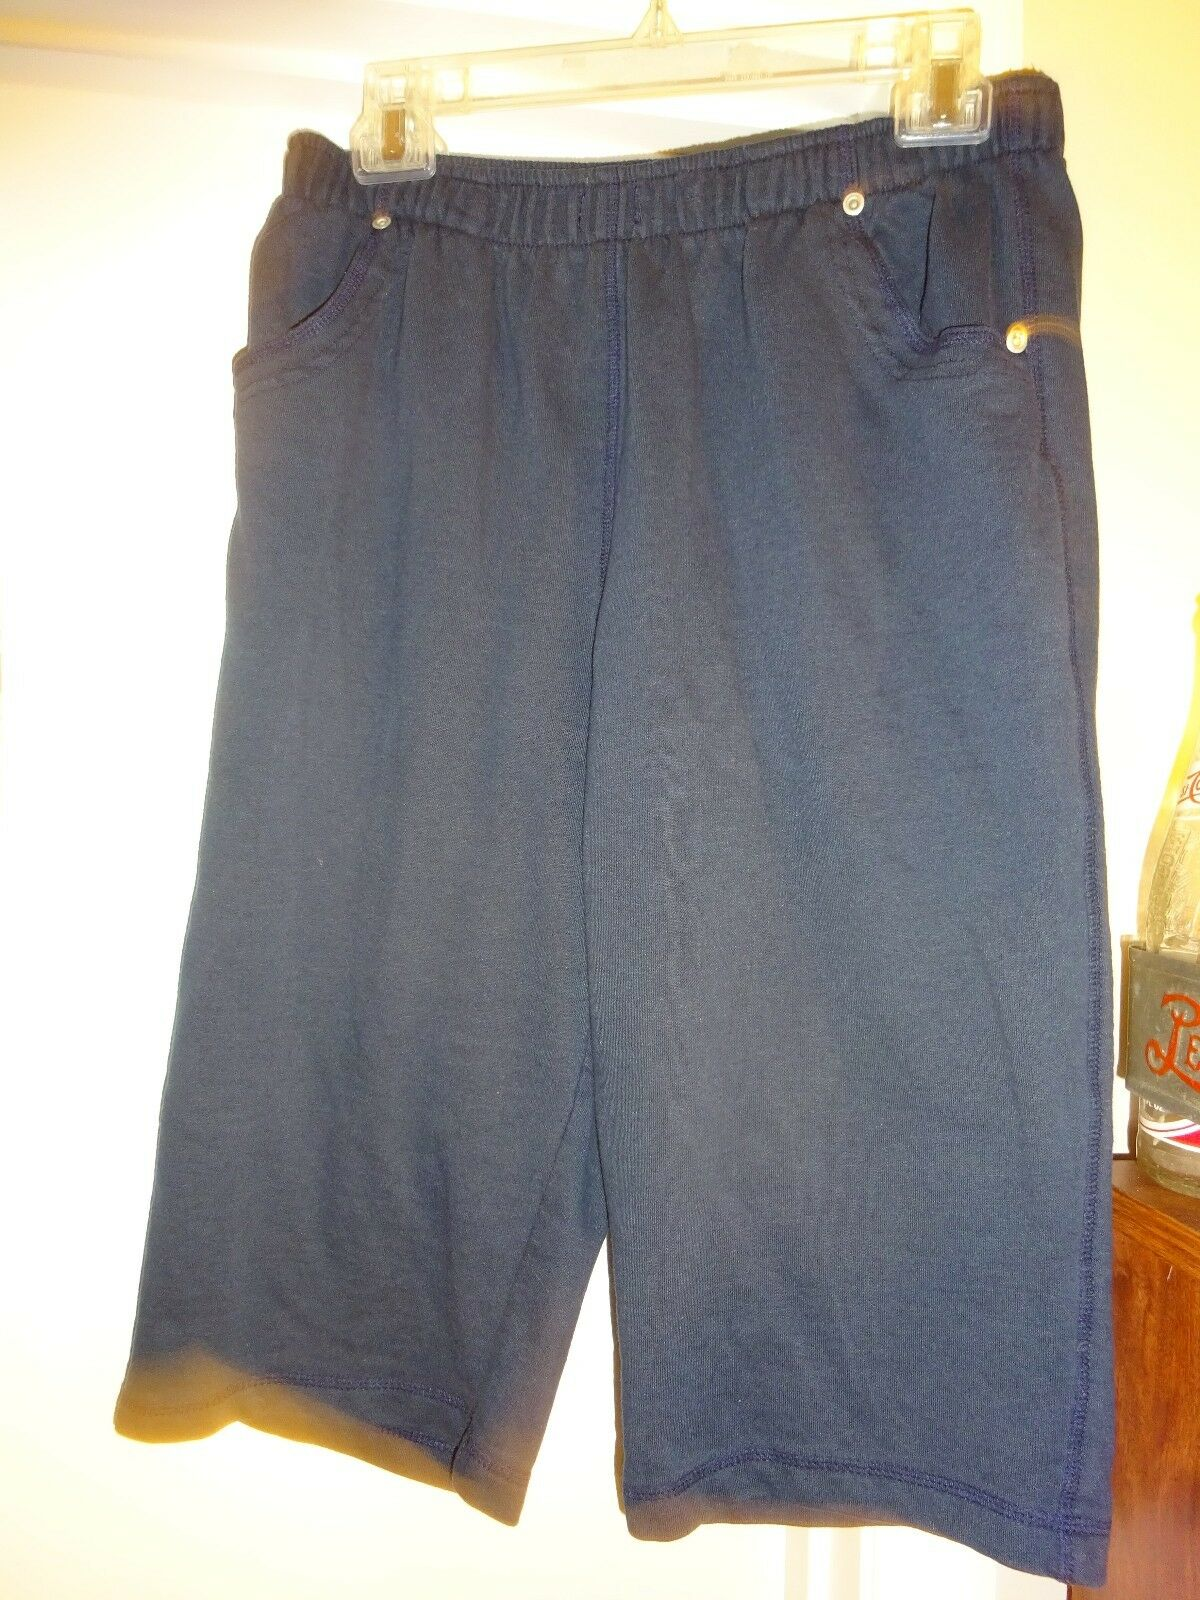 LANA LEE Capri's Capri Cropped Pants Size Medium Navy bluee Elastic Waist